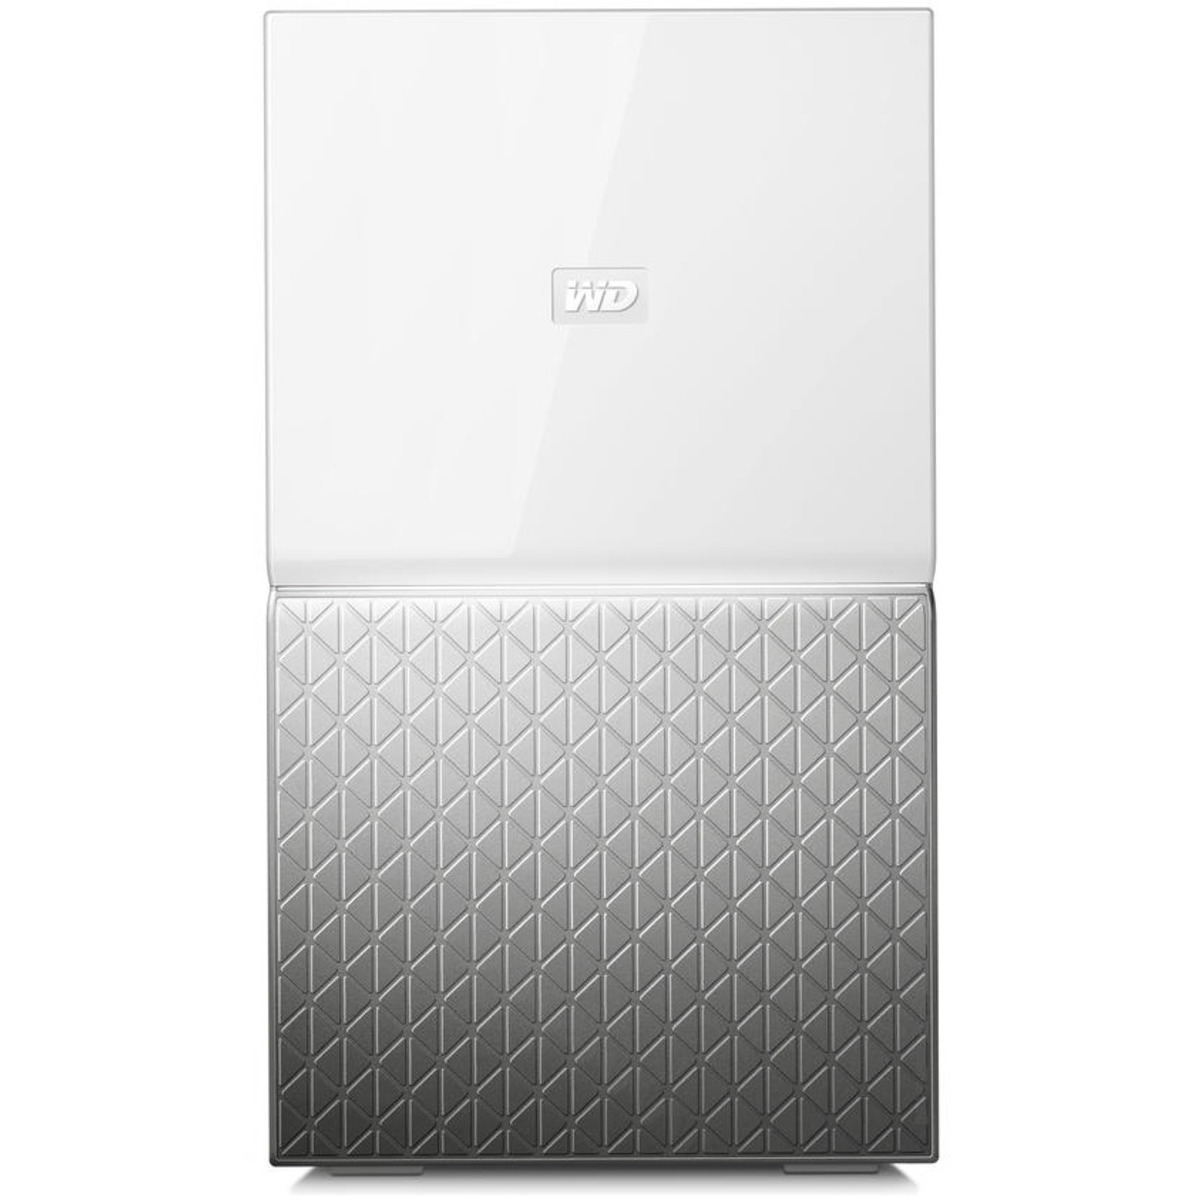 buy $793 Western Digital My Cloud Home Duo 16tb Desktop DAS - Direct Attached Storage Device 2x8000gb Western Digital Gold WD8002FRYZ 3.5 7200rpm SATA 6Gb/s HDD ENTERPRISE Class Drives Installed - Burn-In Tested - nas headquarters buy network attached storage server device das new sale raid-5 free shipping usa My Cloud Home Duo